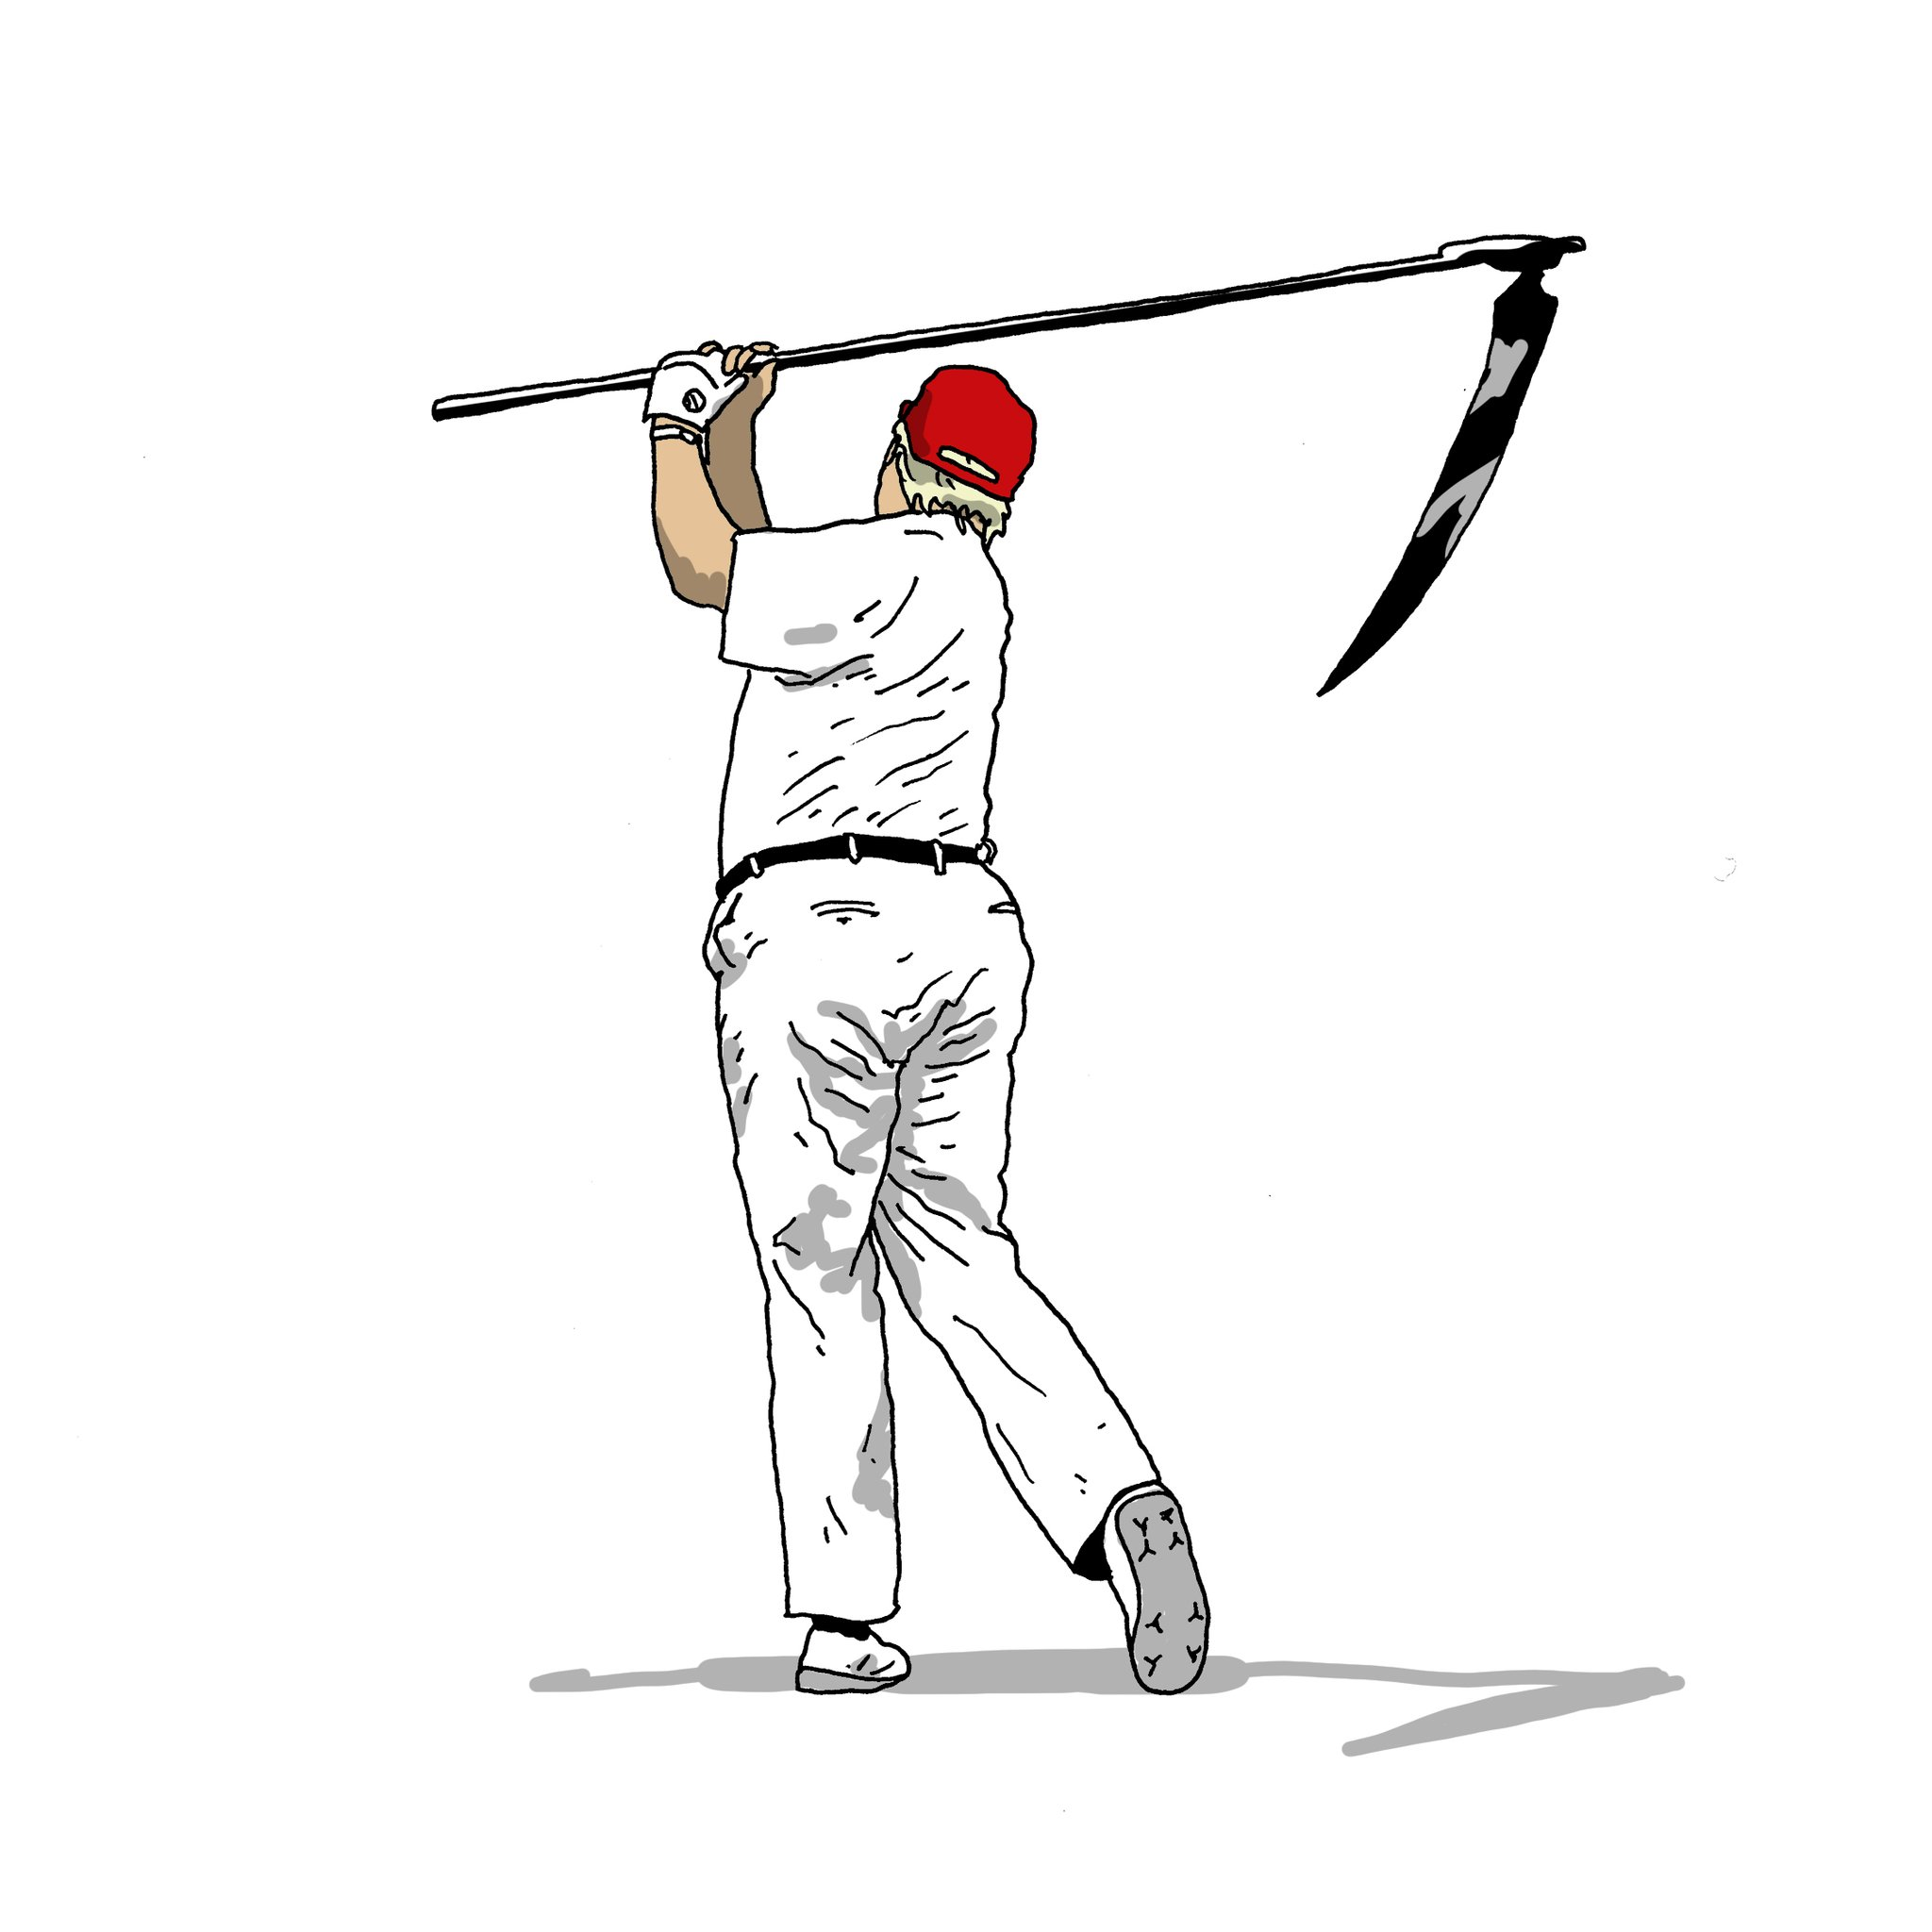 I woke up this morning and noticed that my drawing 'Donald the Reaper' was liked and shared en masse on Twitter. Thank you all for that. Please Retweet this image; I want to be sure Trump also sees this drawing today. https://t.co/wxOspPyvNB